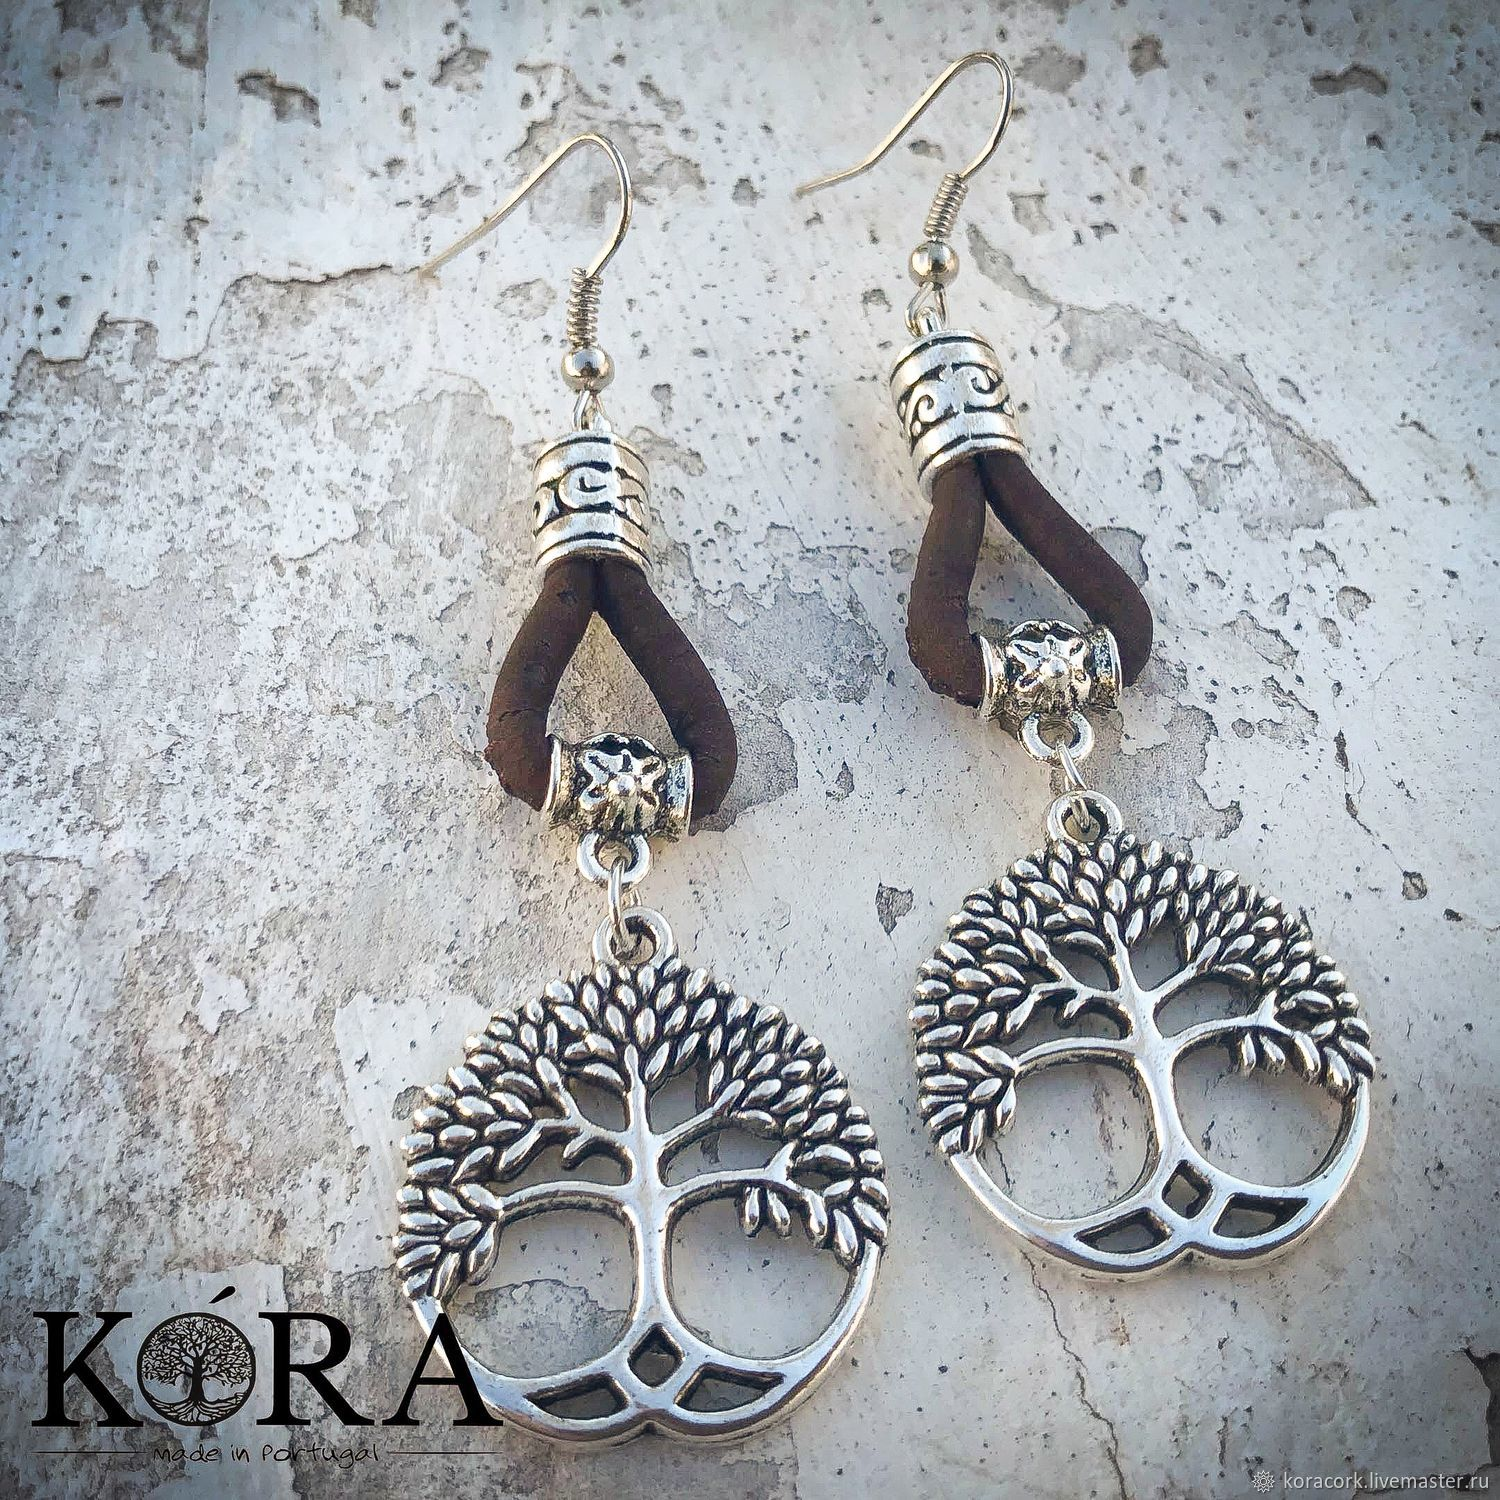 Tree Of Life Earrings From Portuguese Cork Br0092bl Shop Online On Livemaster With Shipping I2dv1com Moscow